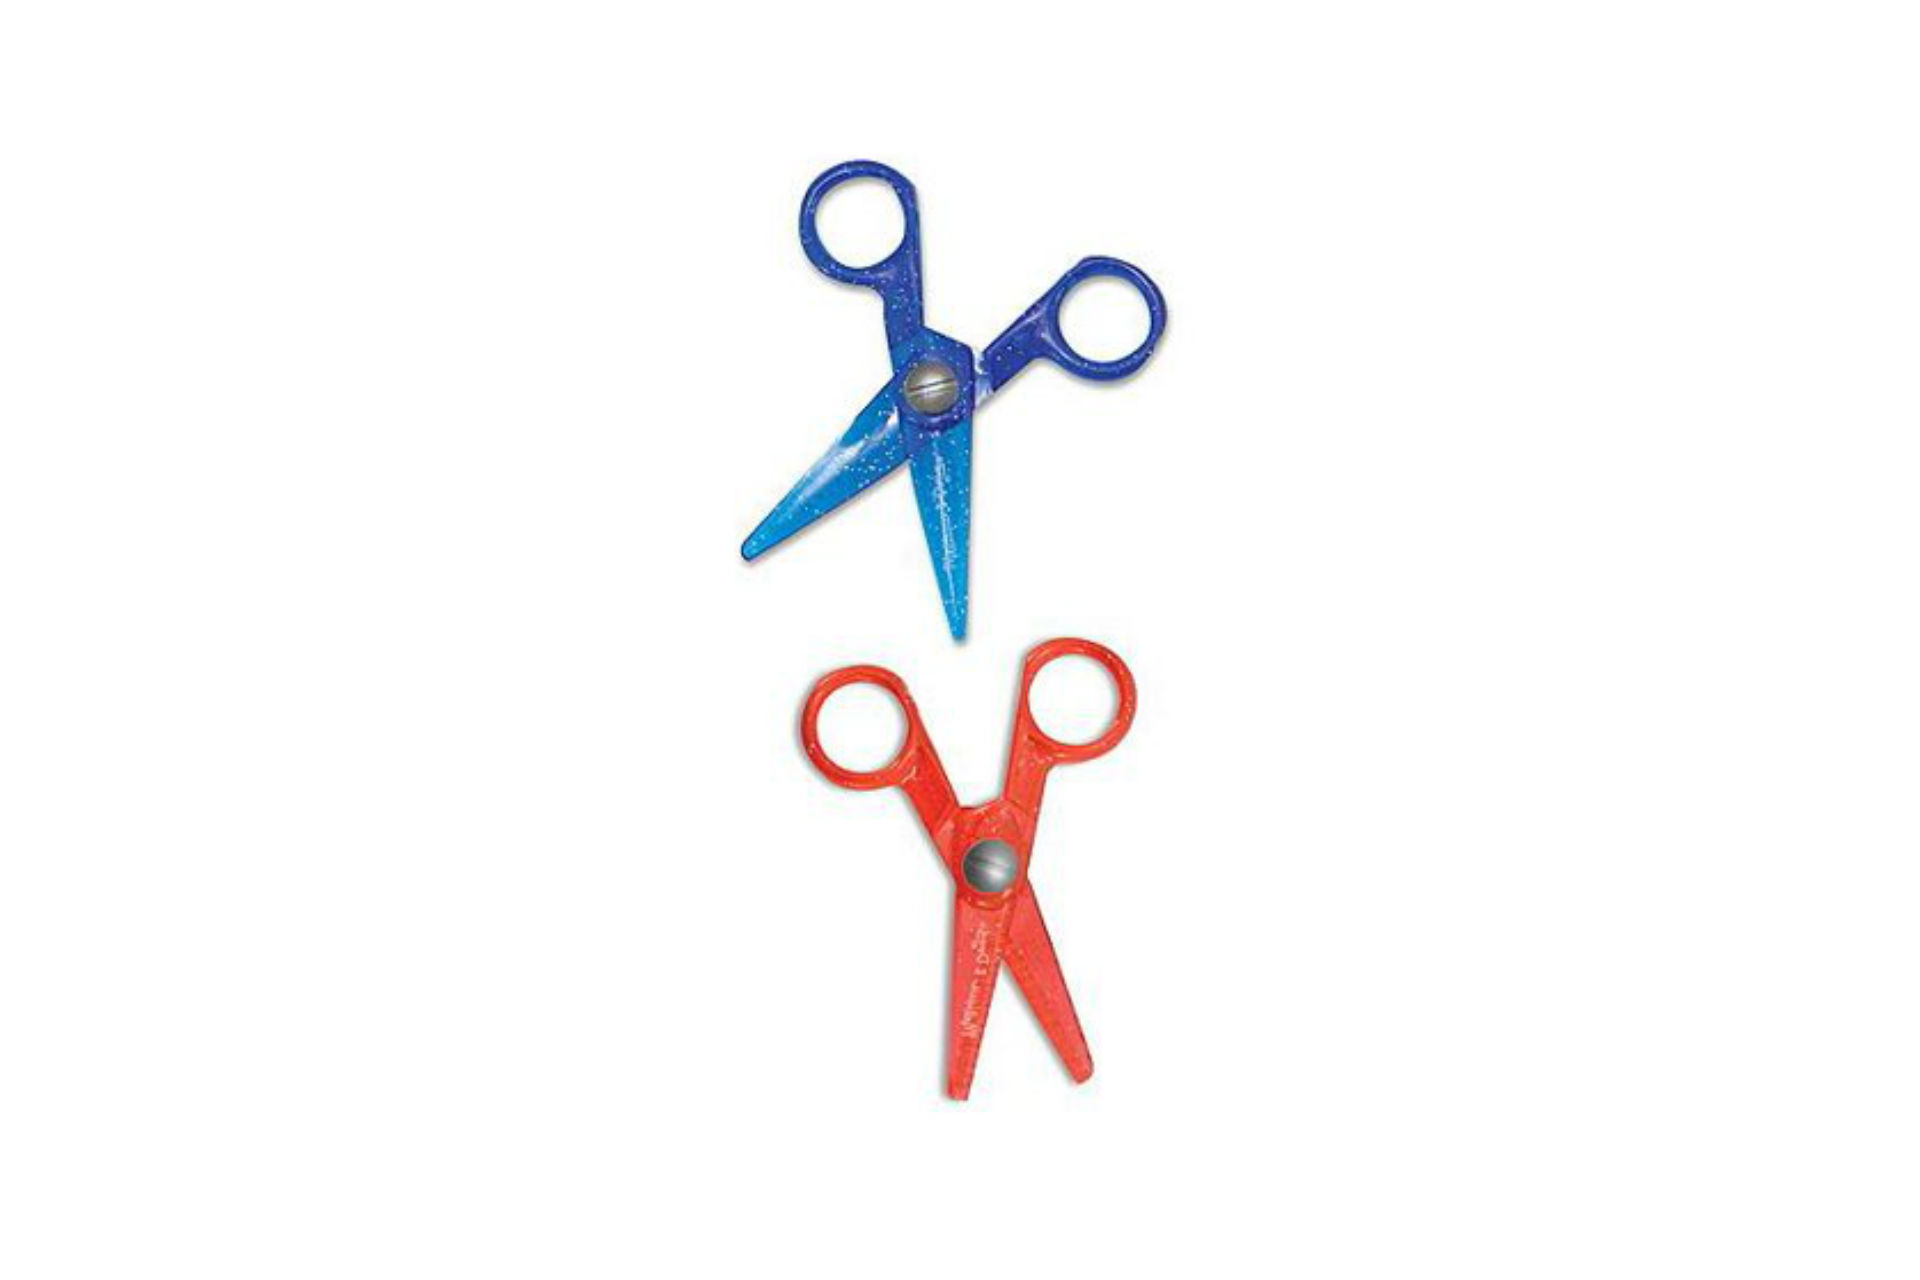 pair of blue and red children's scissors